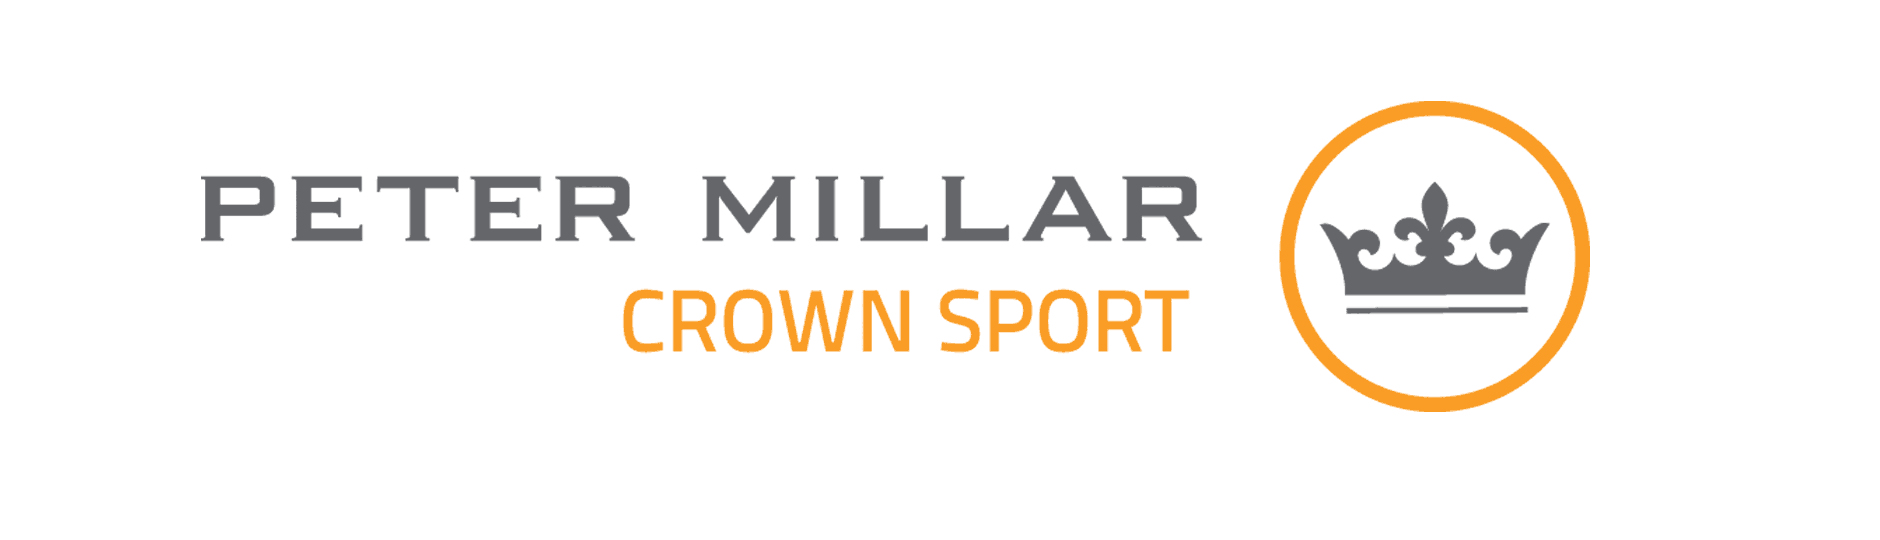 Peter Millar - Crown Sport